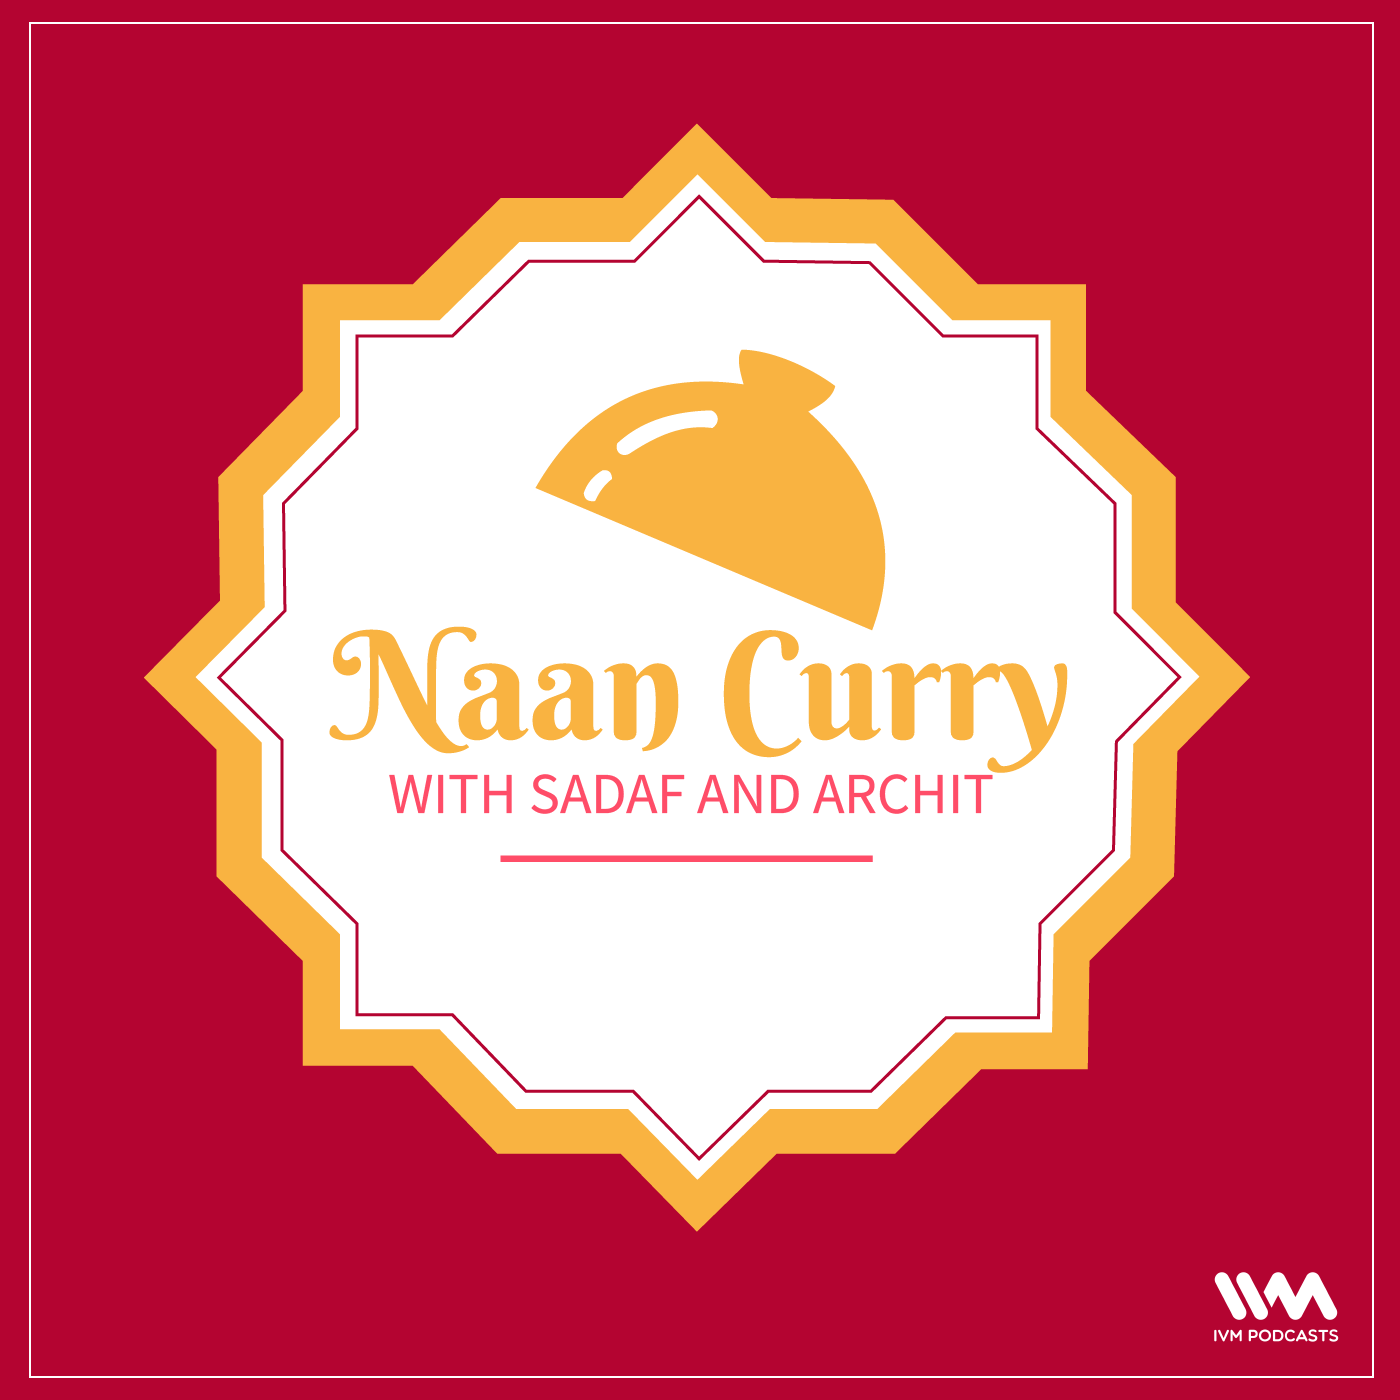 Naan Curry with Sadaf and Archit